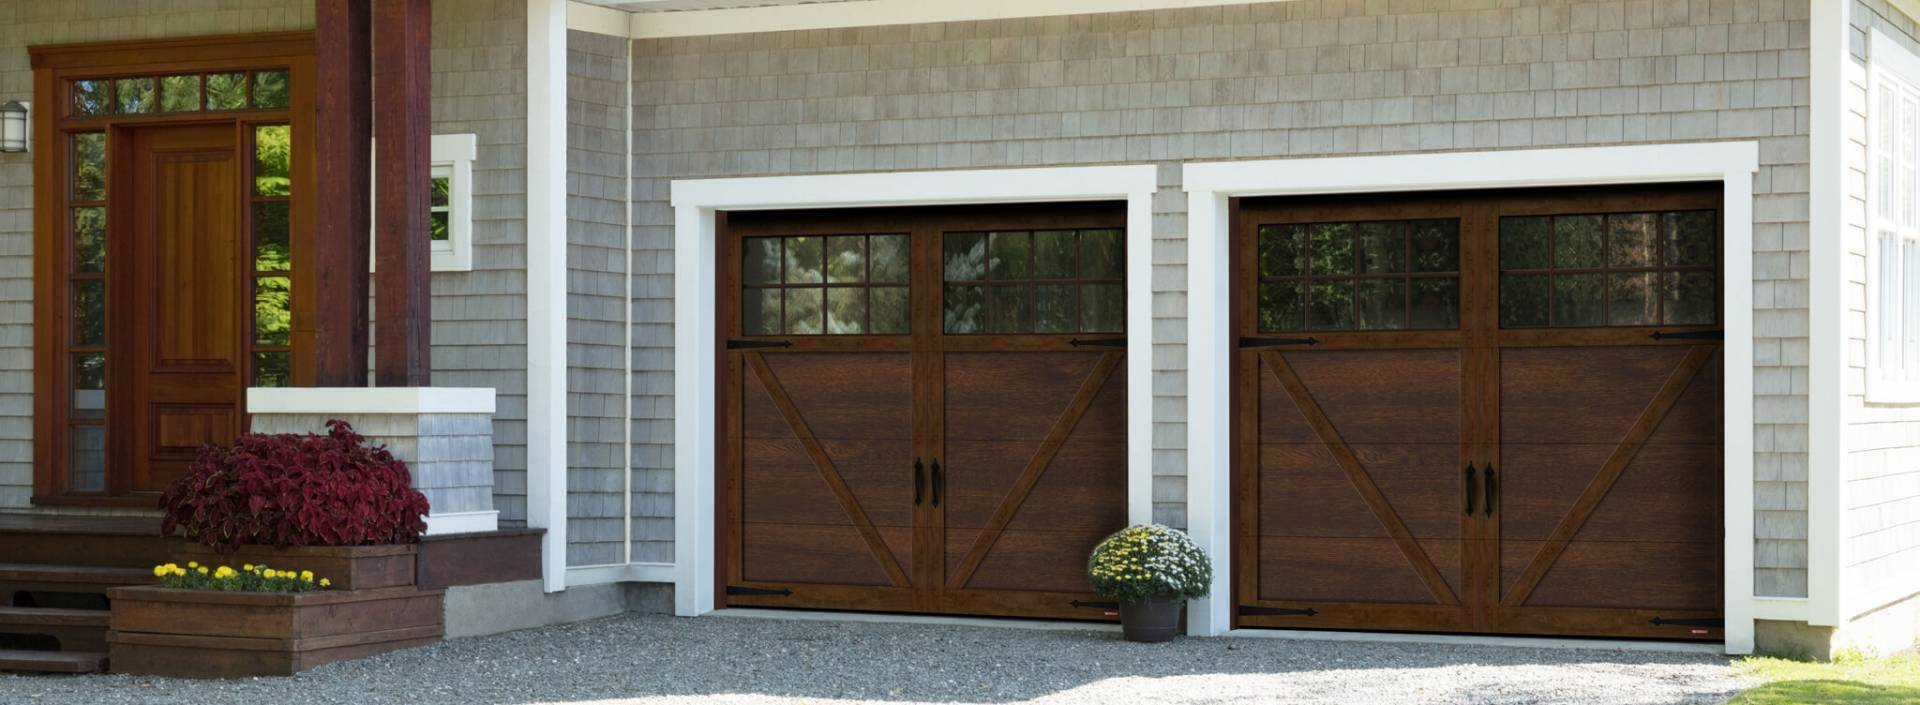 Princeton P-23, 8' x 7', Chocolate Walnut door and overlays, 8 lite Panoramic windows